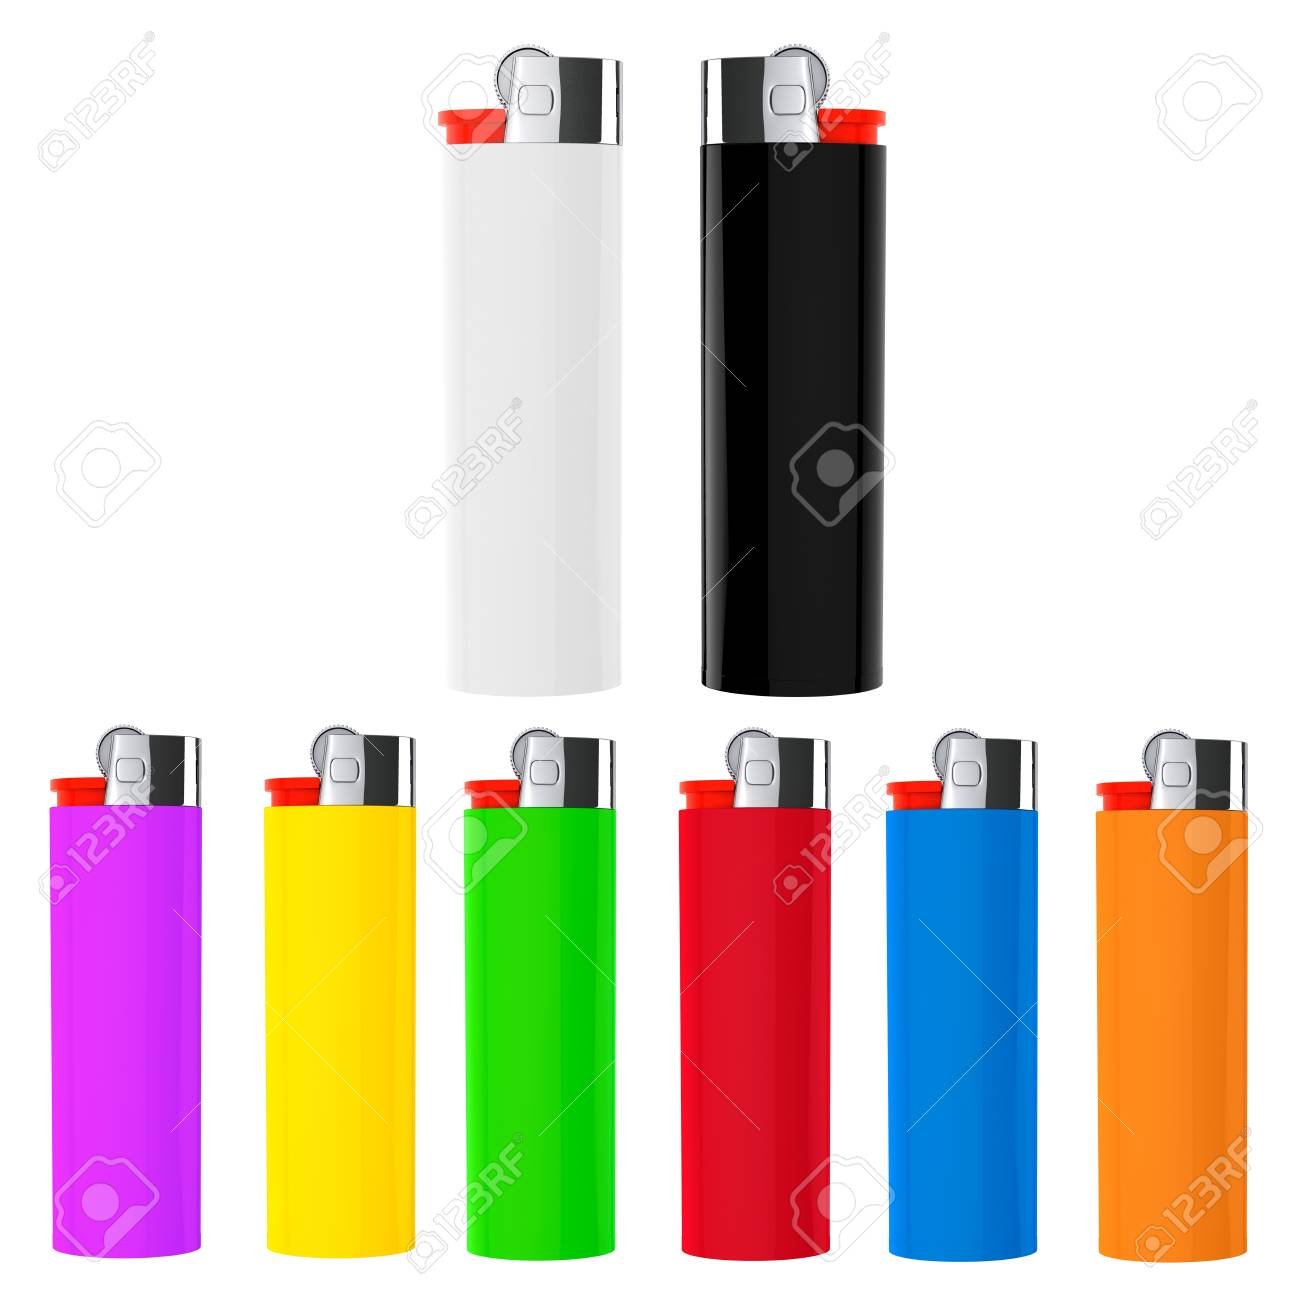 Set of Multicolor closeup cigarette lighters on a white background Stock Photo - 21221702